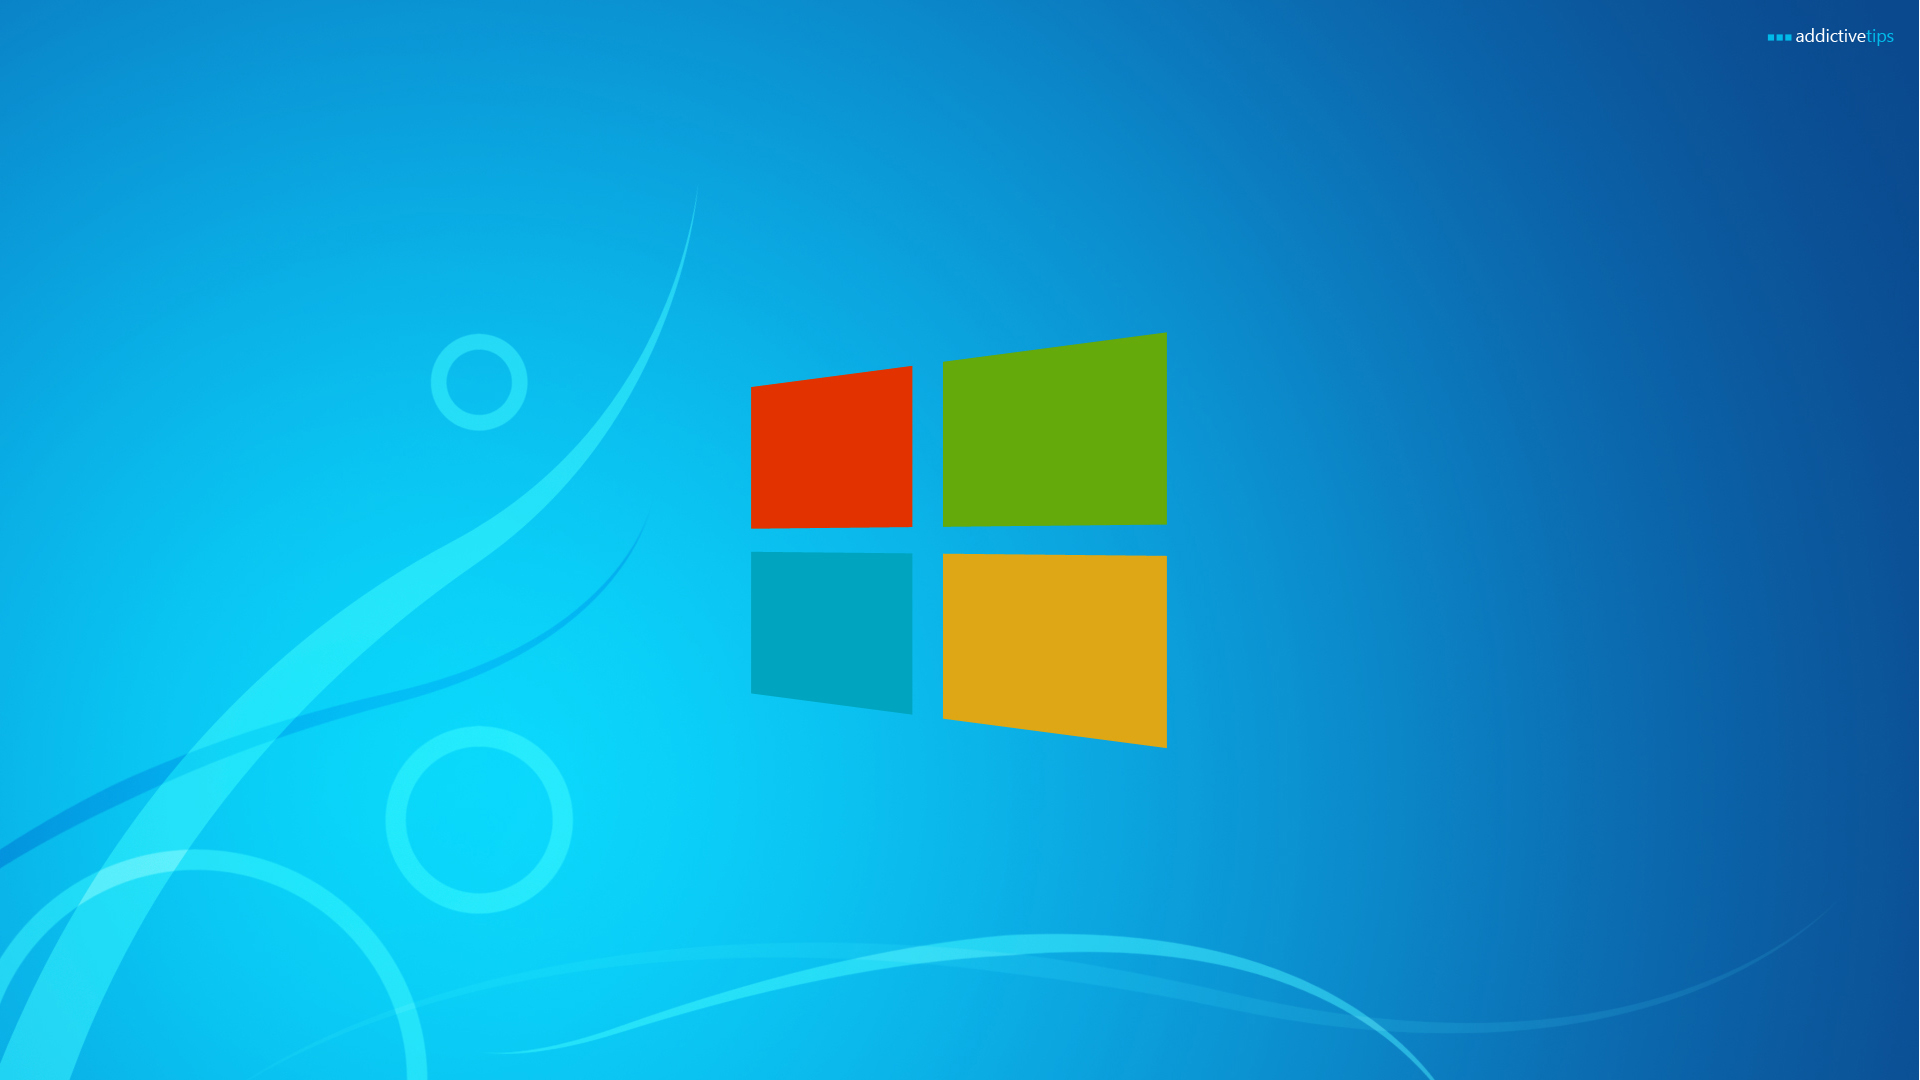 windows 8 wallpaper 2463 1920x1080 px ~ hdwallsource